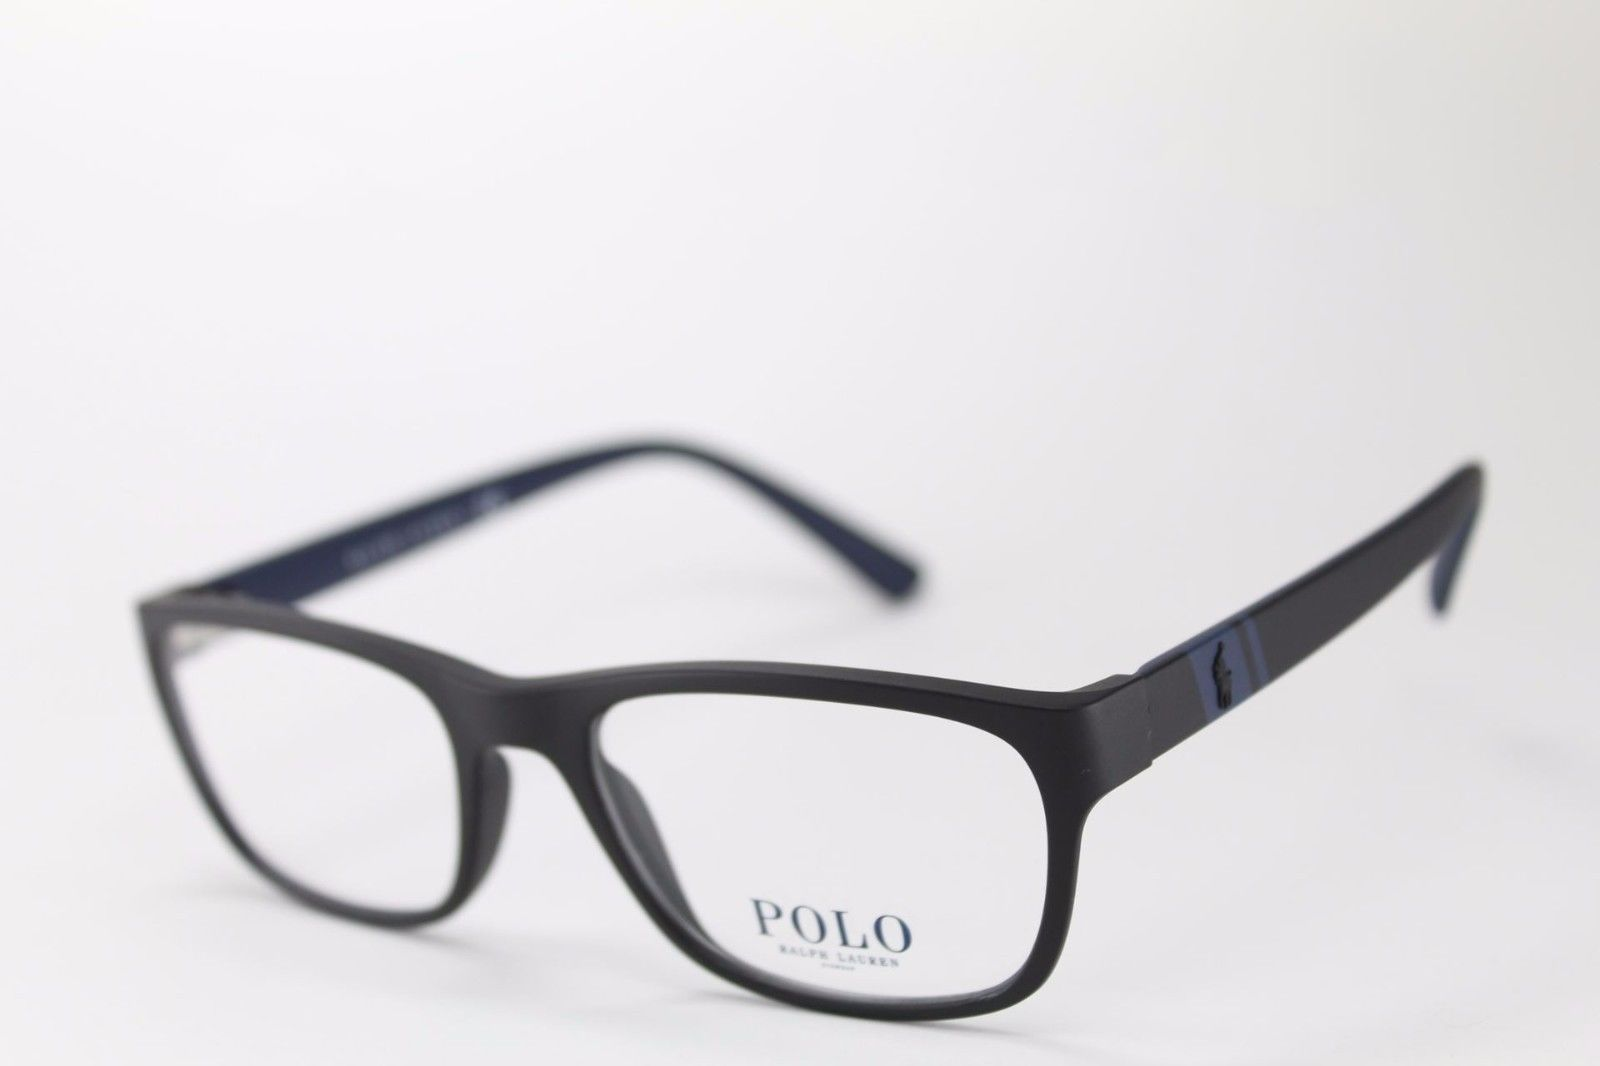 6185e69993 Ralph Lauren Brille PH 2153 col. 5284